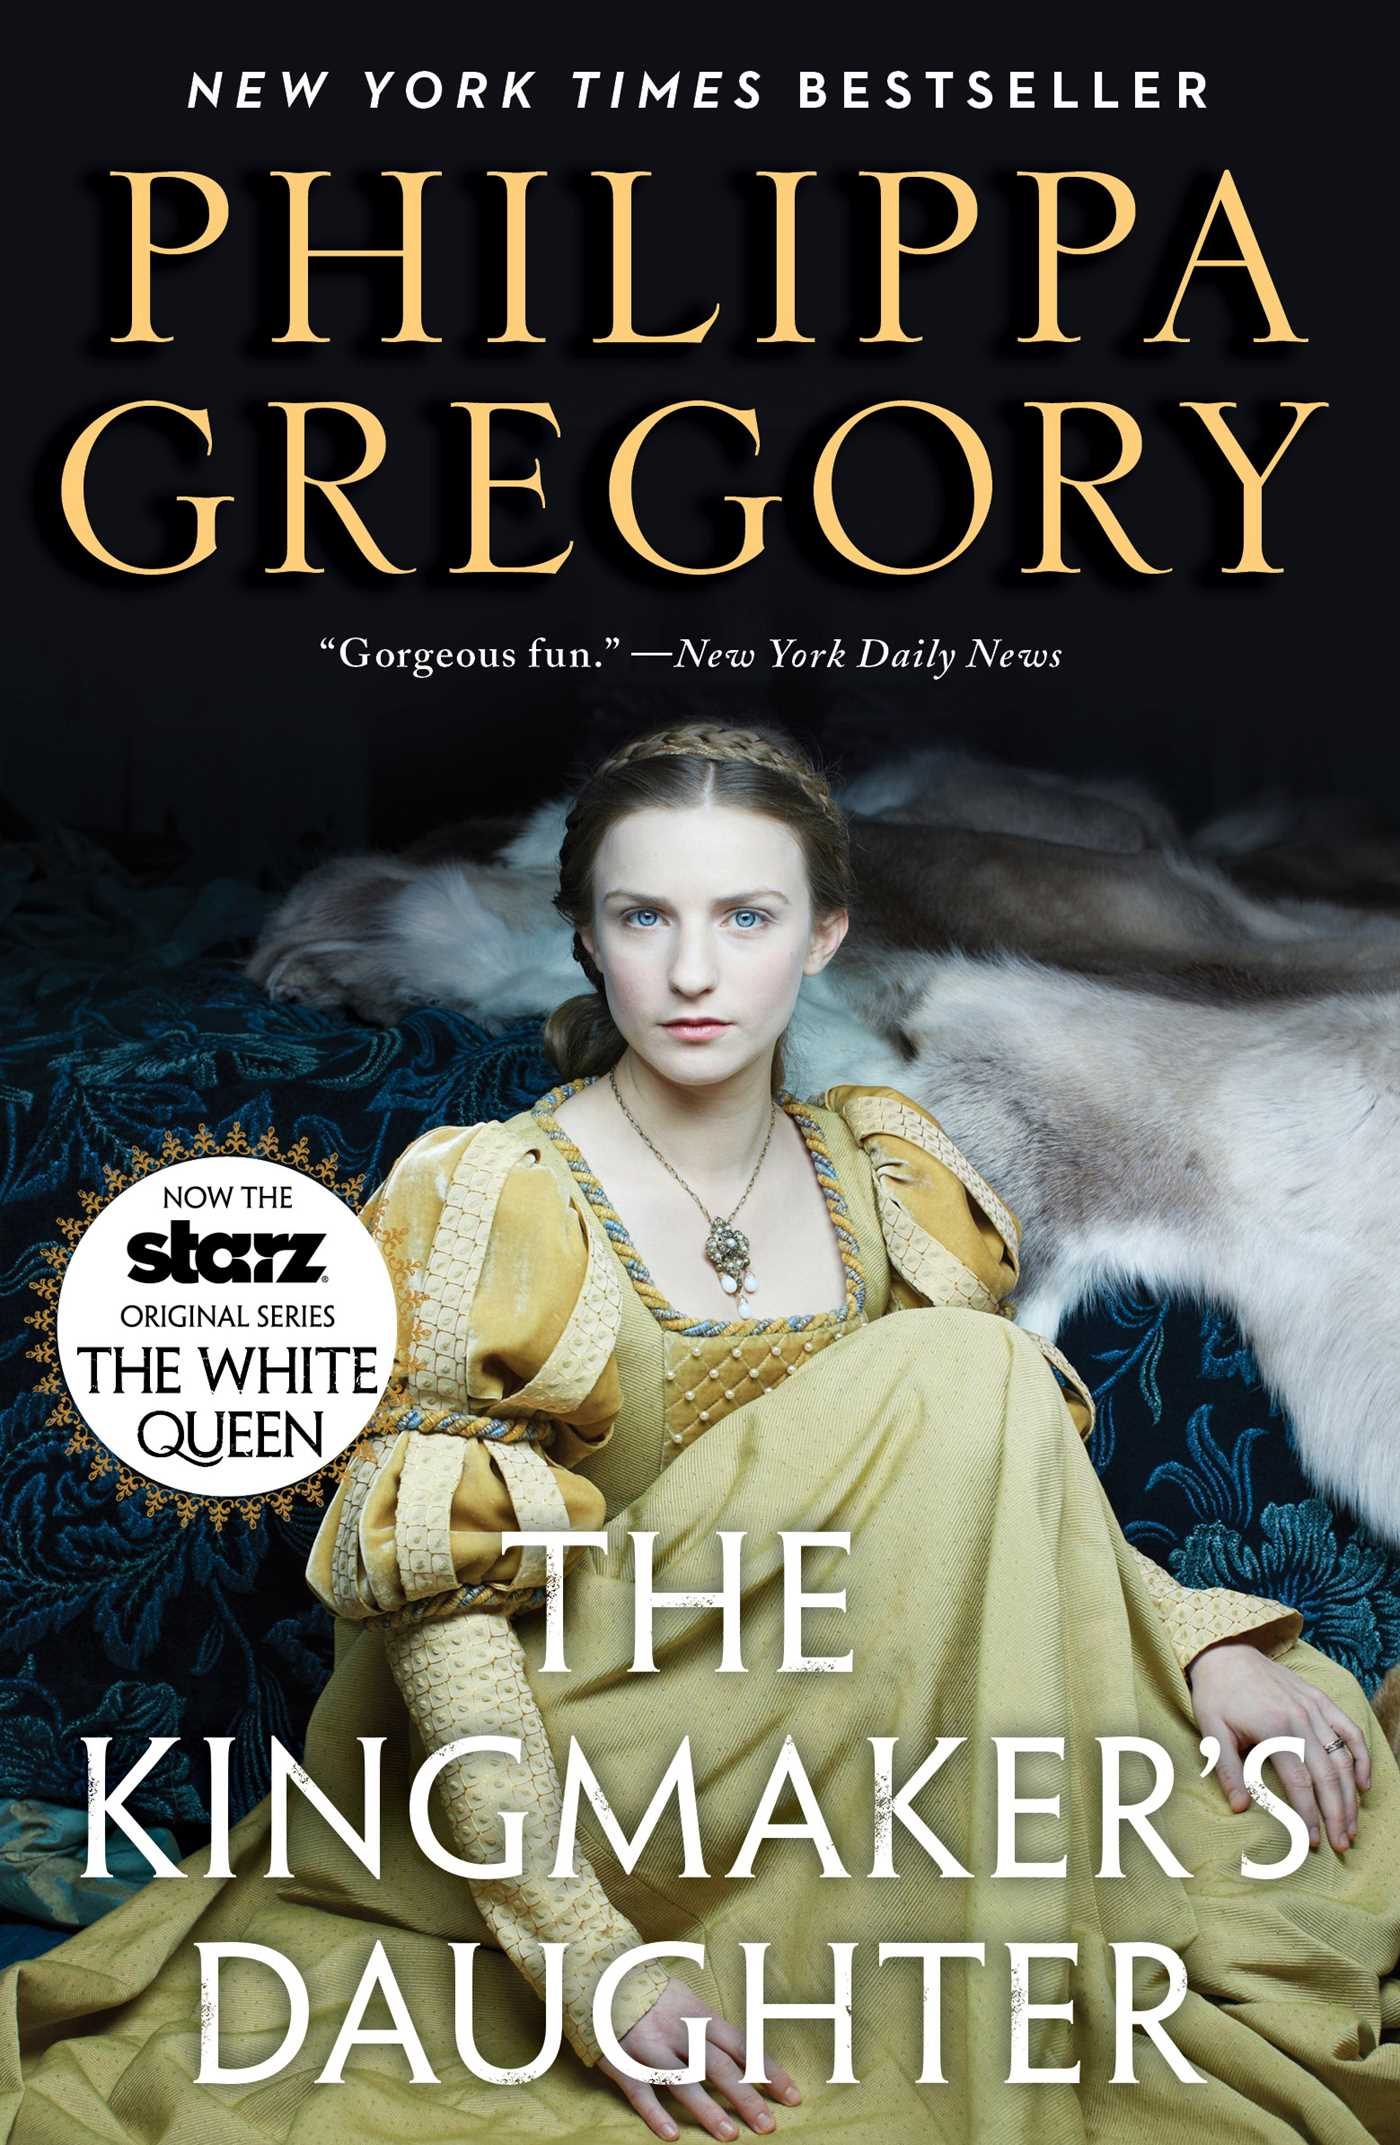 The-kingmakers-daughter-9781451626148_hr